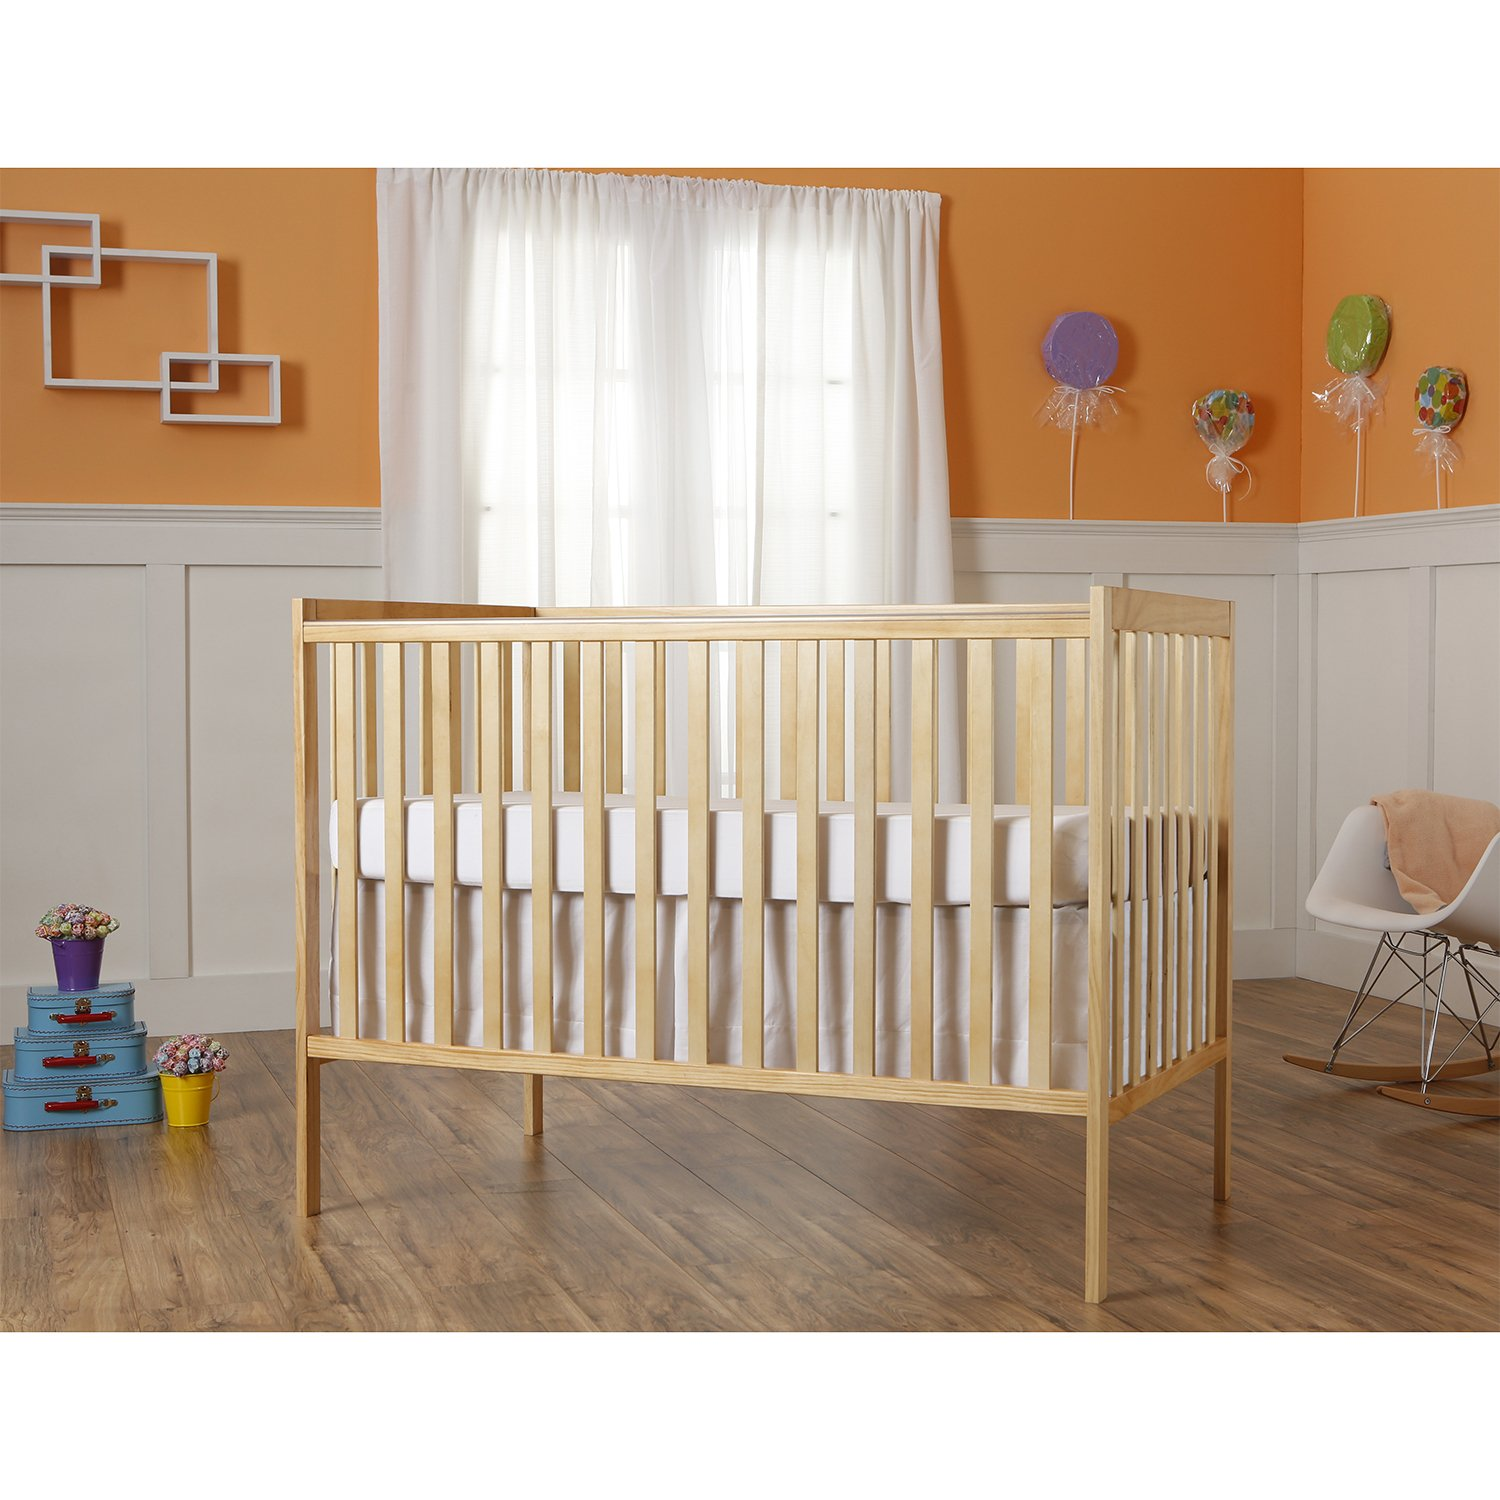 Dream On Me Synergy 5-in-1 Convertible, Crib, Natural by Dream On Me (Image #3)